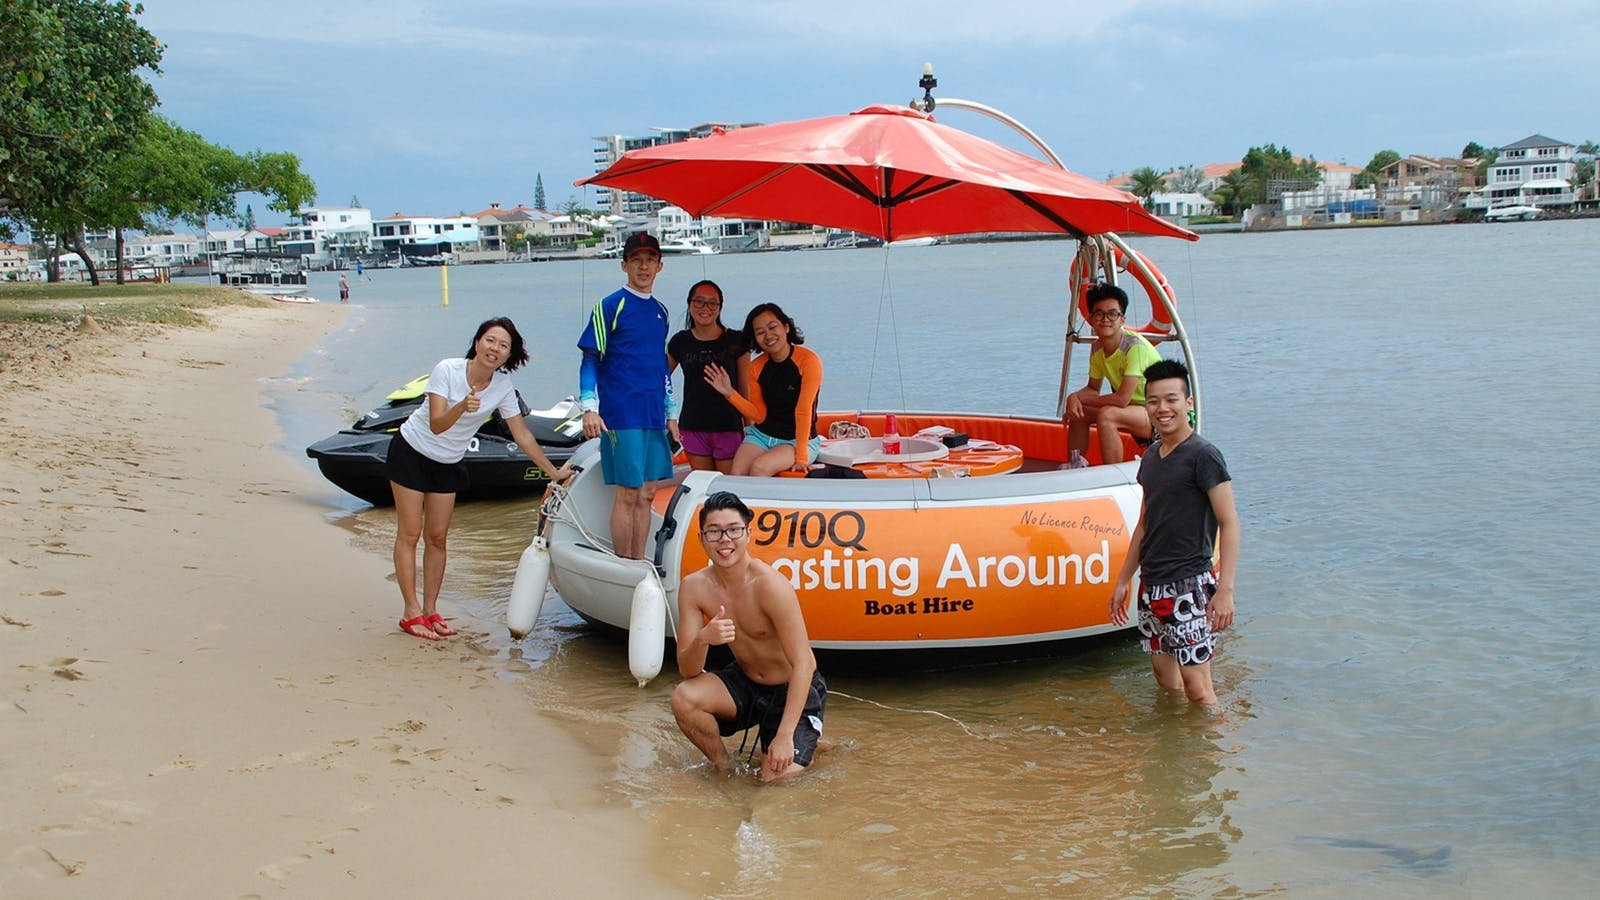 on the beach with Coasting Around Boat Hire